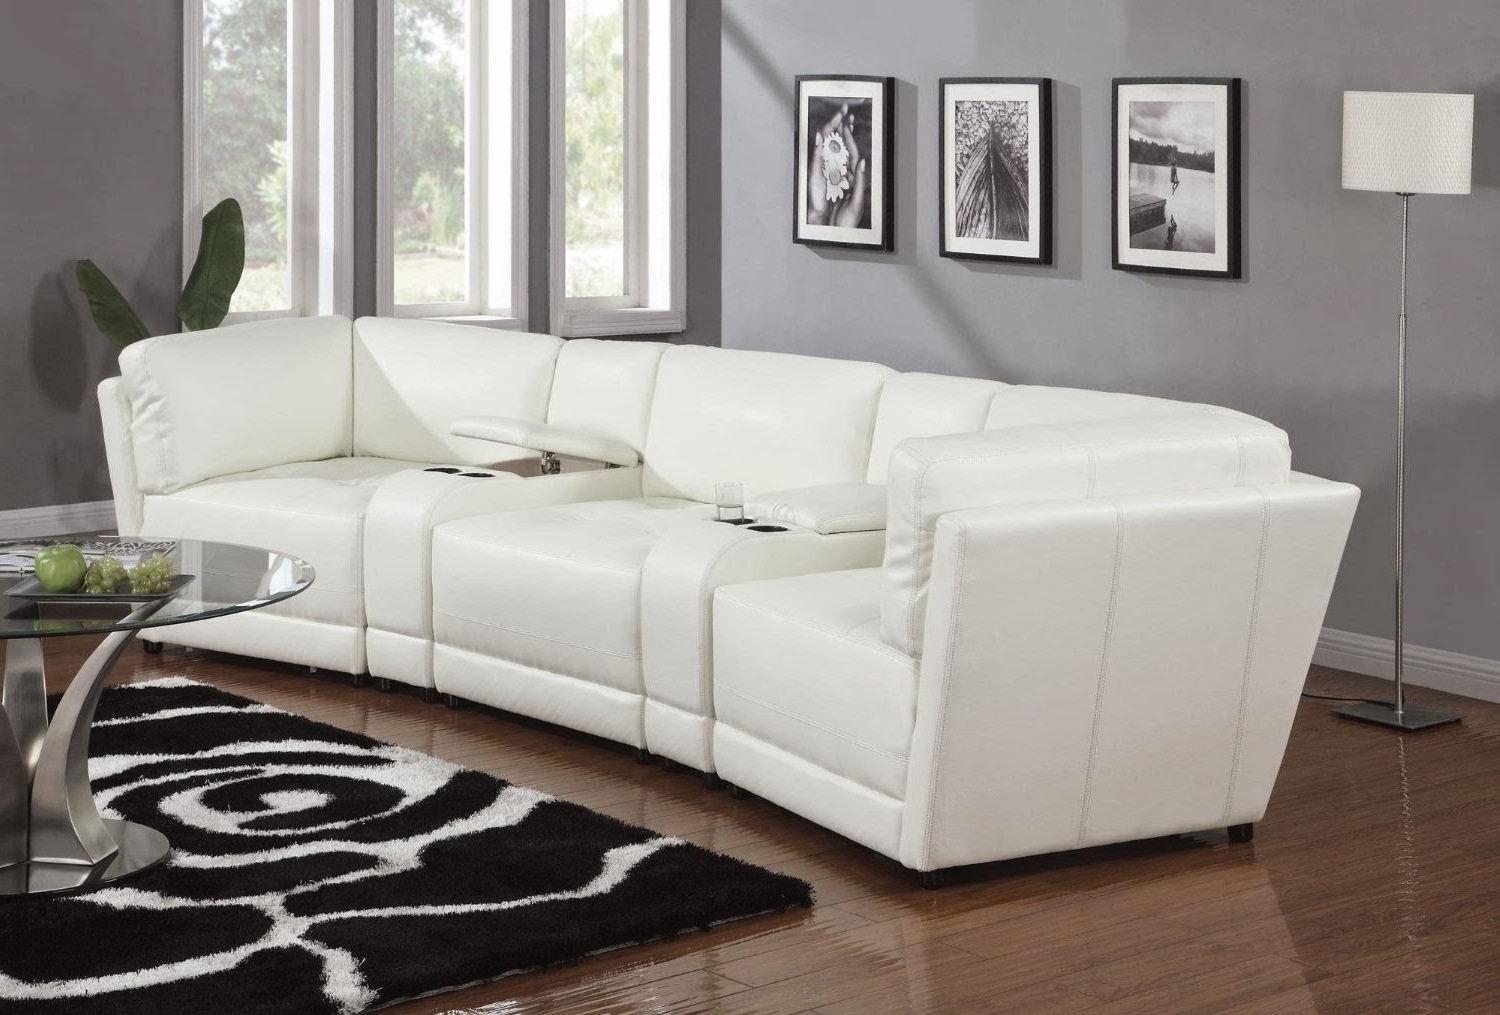 Vancouver Bc Sectional Sofas with 2018 Petite Sectional Sofa - Cleanupflorida